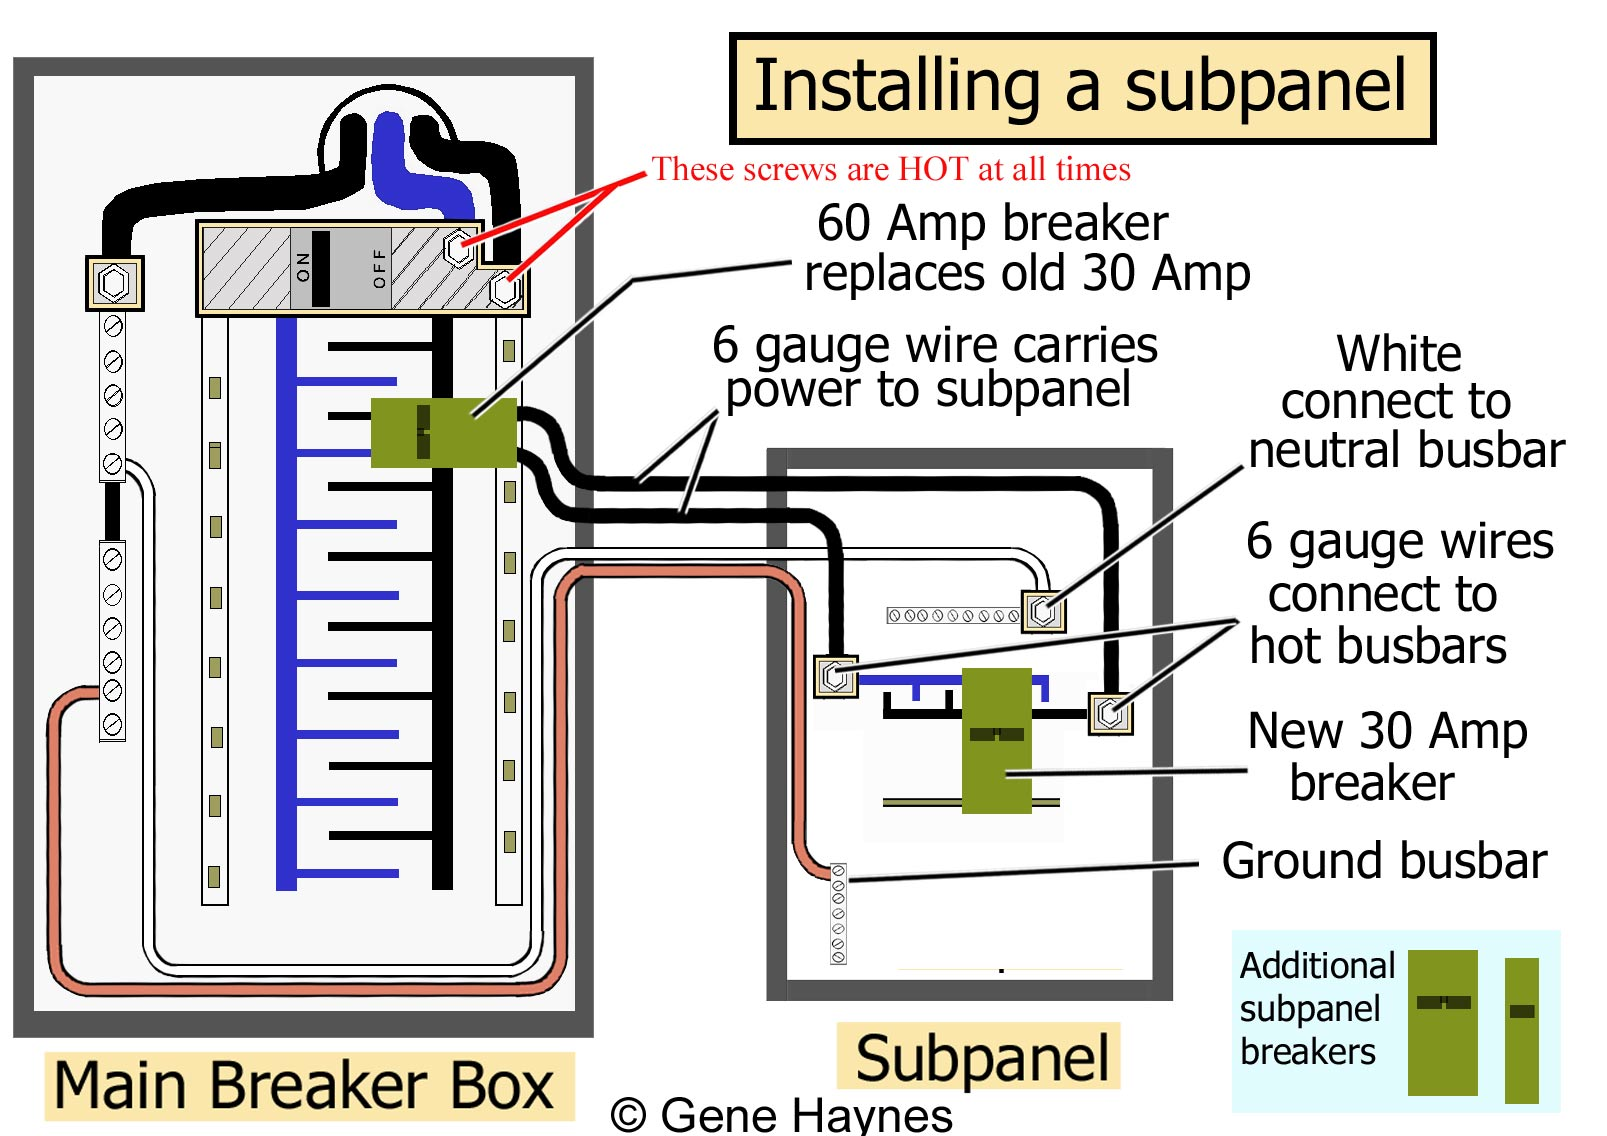 how to install a subpanel how to install main lug rh waterheatertimer org Wiring 240V to Hot Tub 220V GFCI Breaker Wiring Diagram